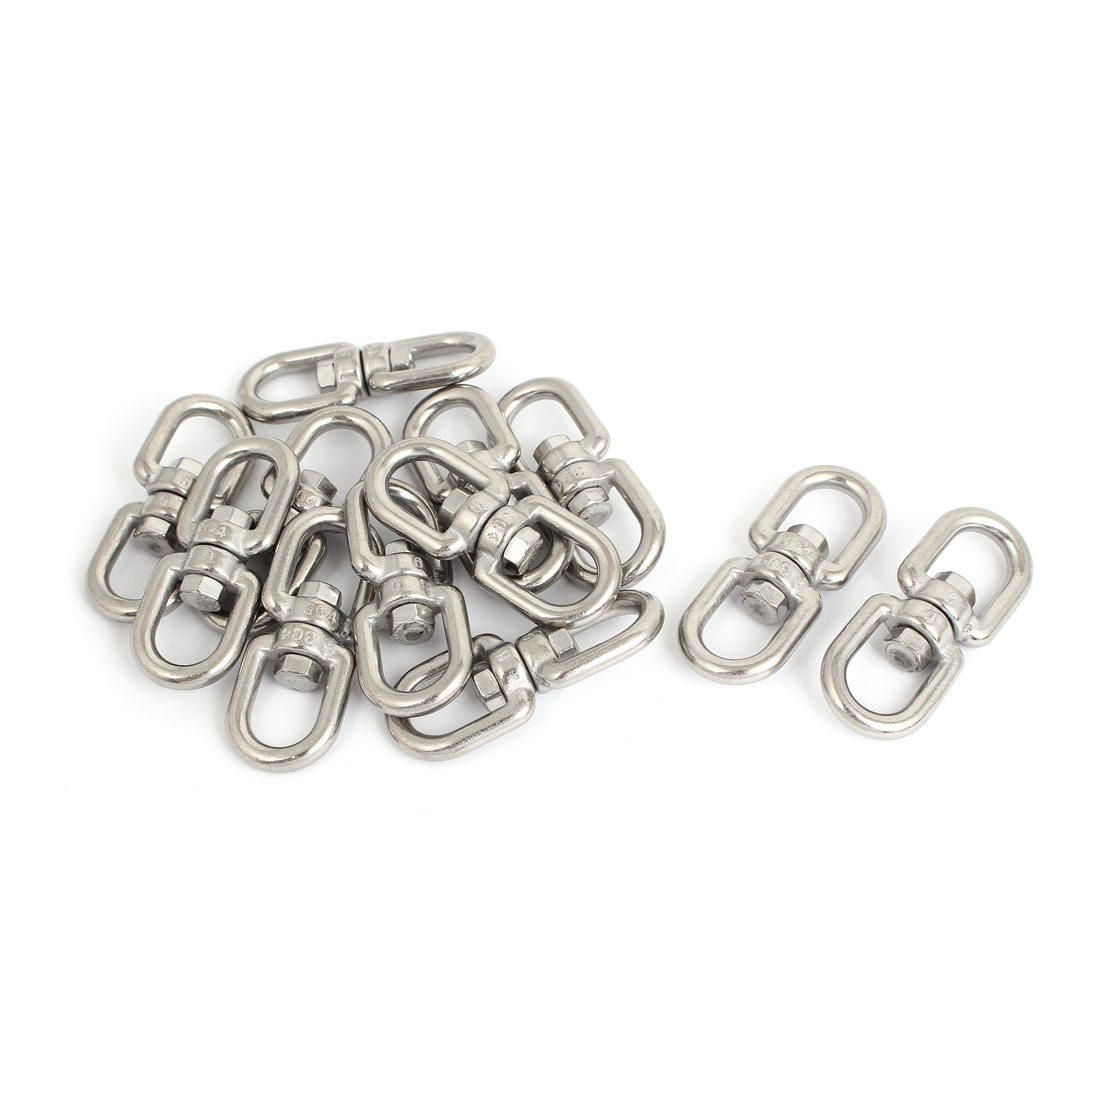 6mm Thickness 304 Stainless Steel Double End Chain Swivel Boat Sea Anchor 12 Pcs